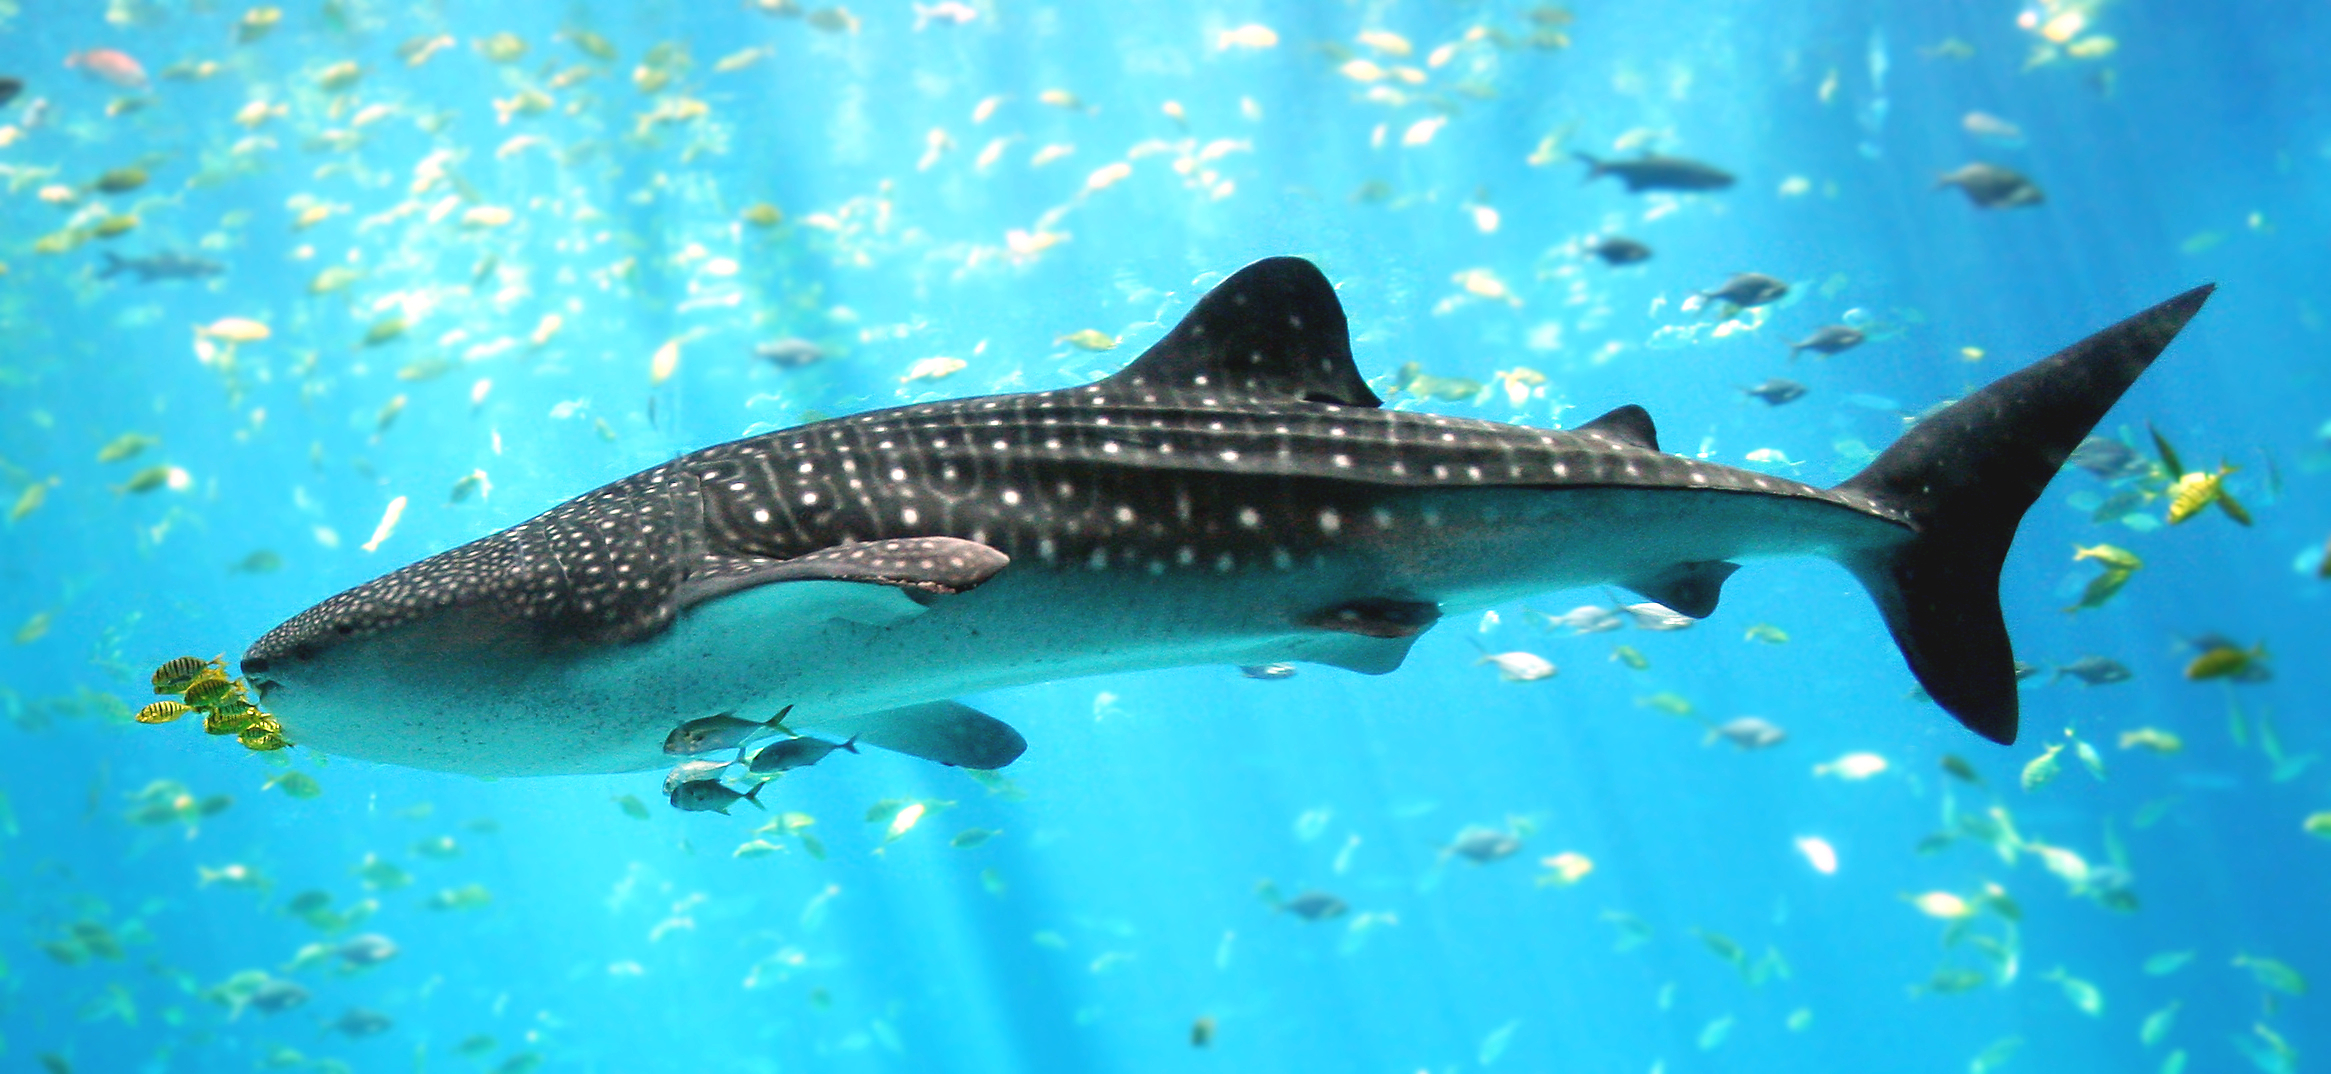 File:Whale shark Georgia aquarium.jpg - Wikimedia Commons